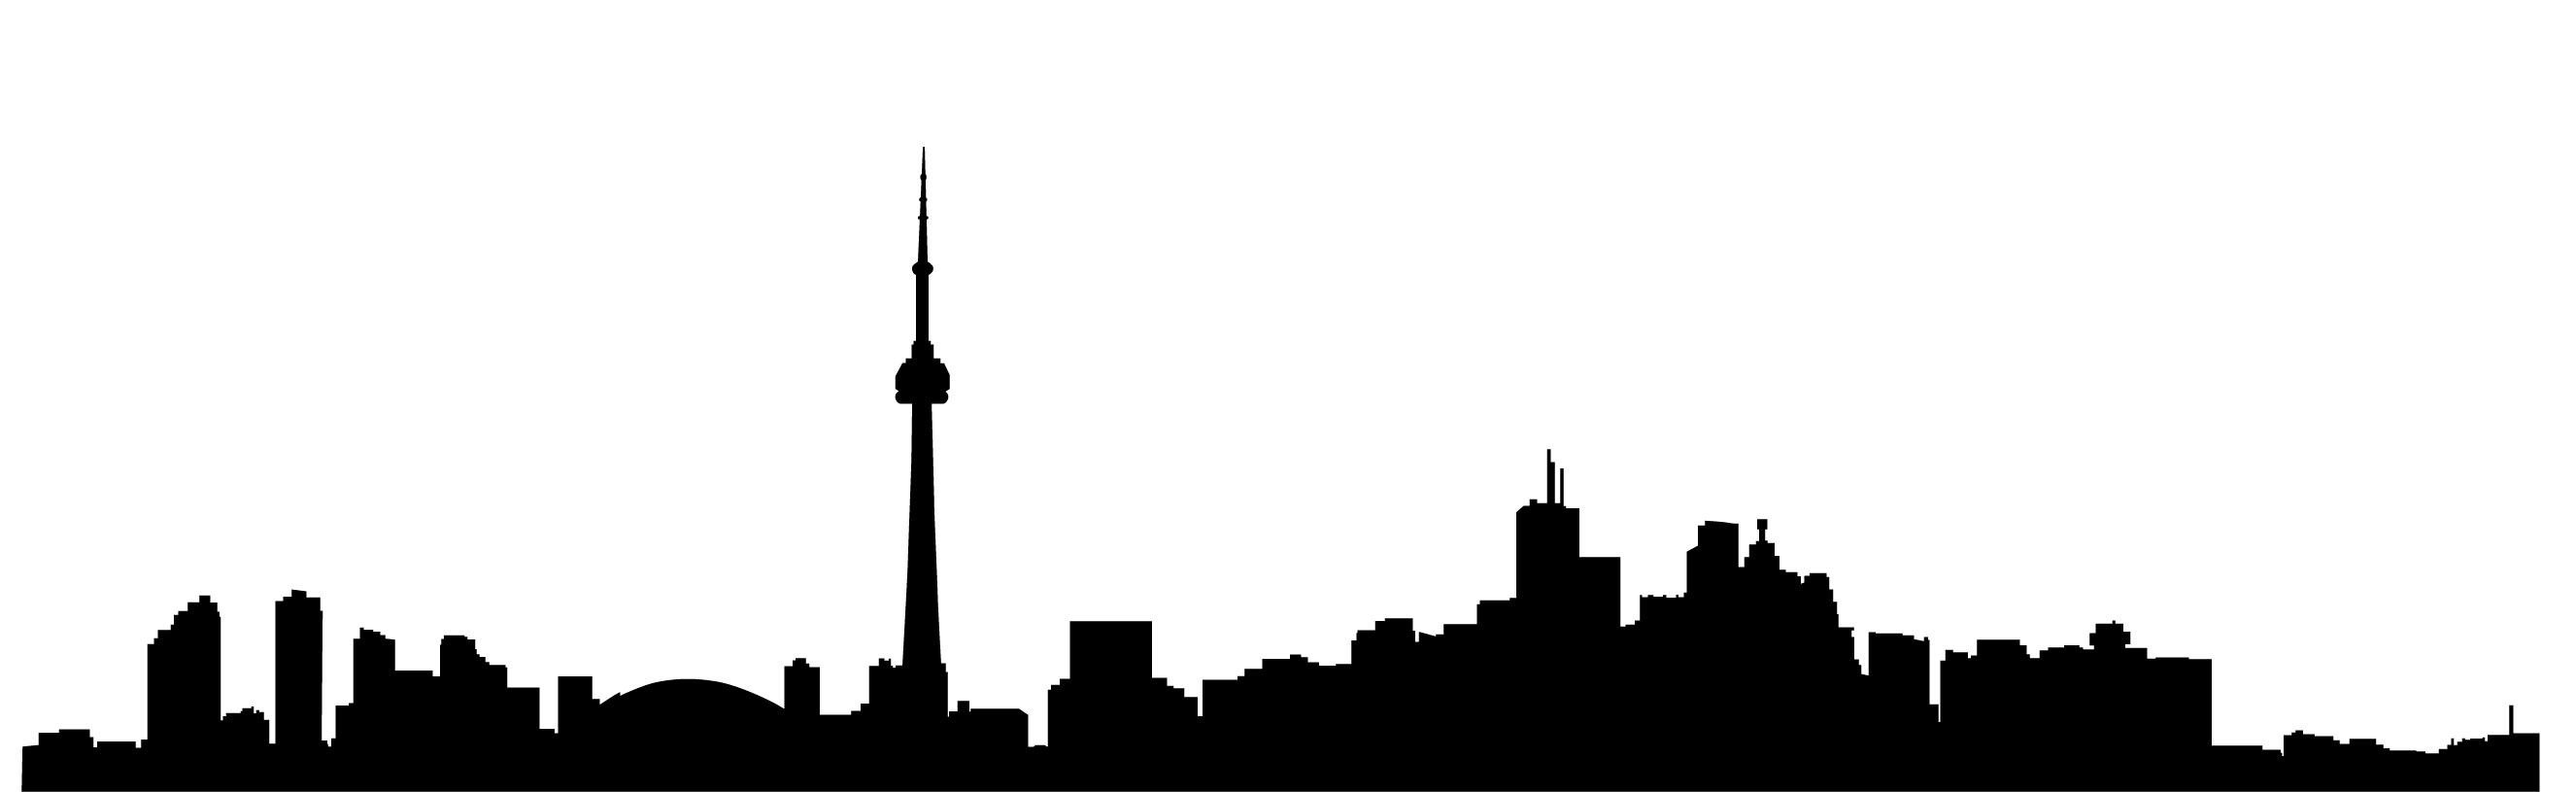 Toronto clipart #5, Download drawings